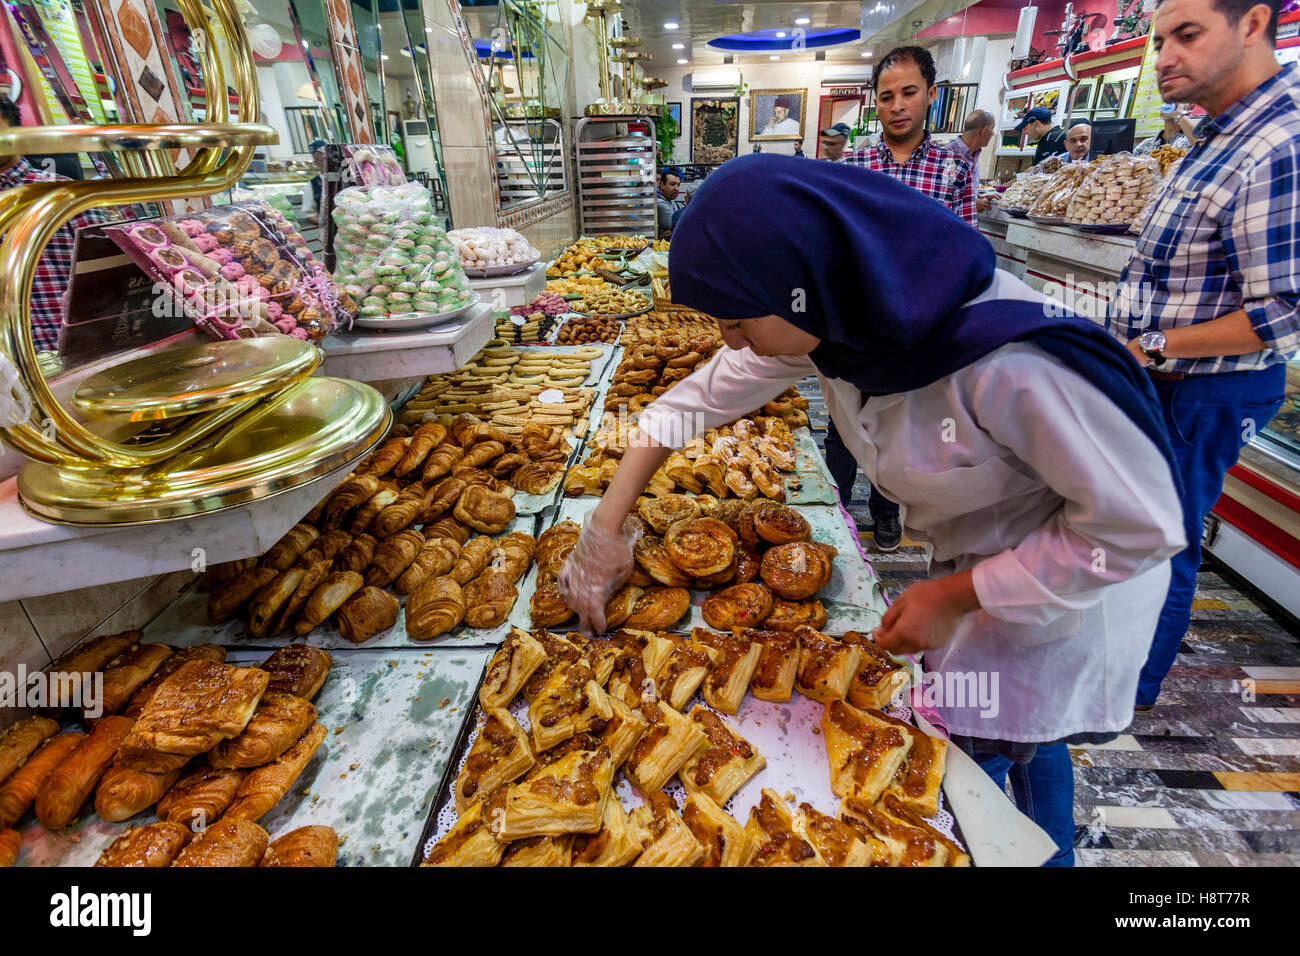 A Female Worker Selects Pastries From The Display At The Dallas Patisserie, Tetouan, Morocco - Stock Image